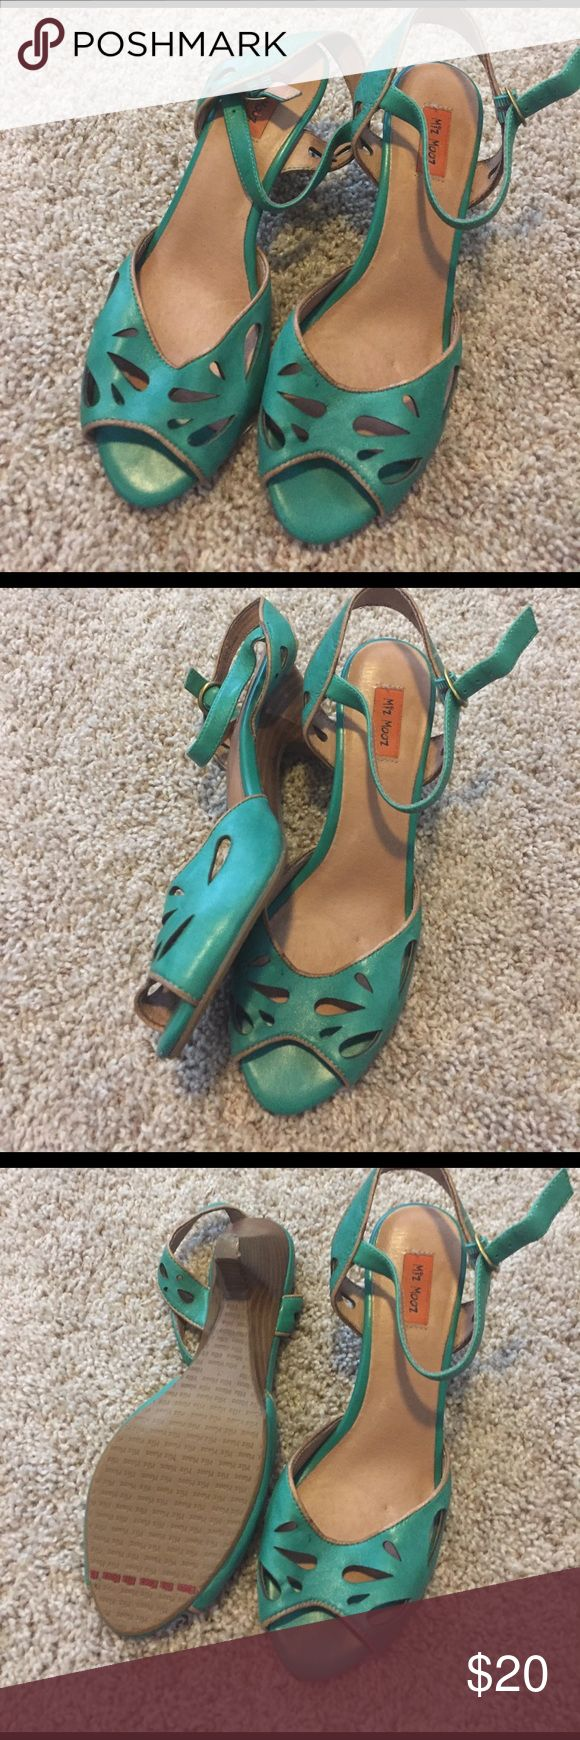 Miz Mooz green strappy peep toe heels These are super cute and such a great color. miz mooz Shoes Heels